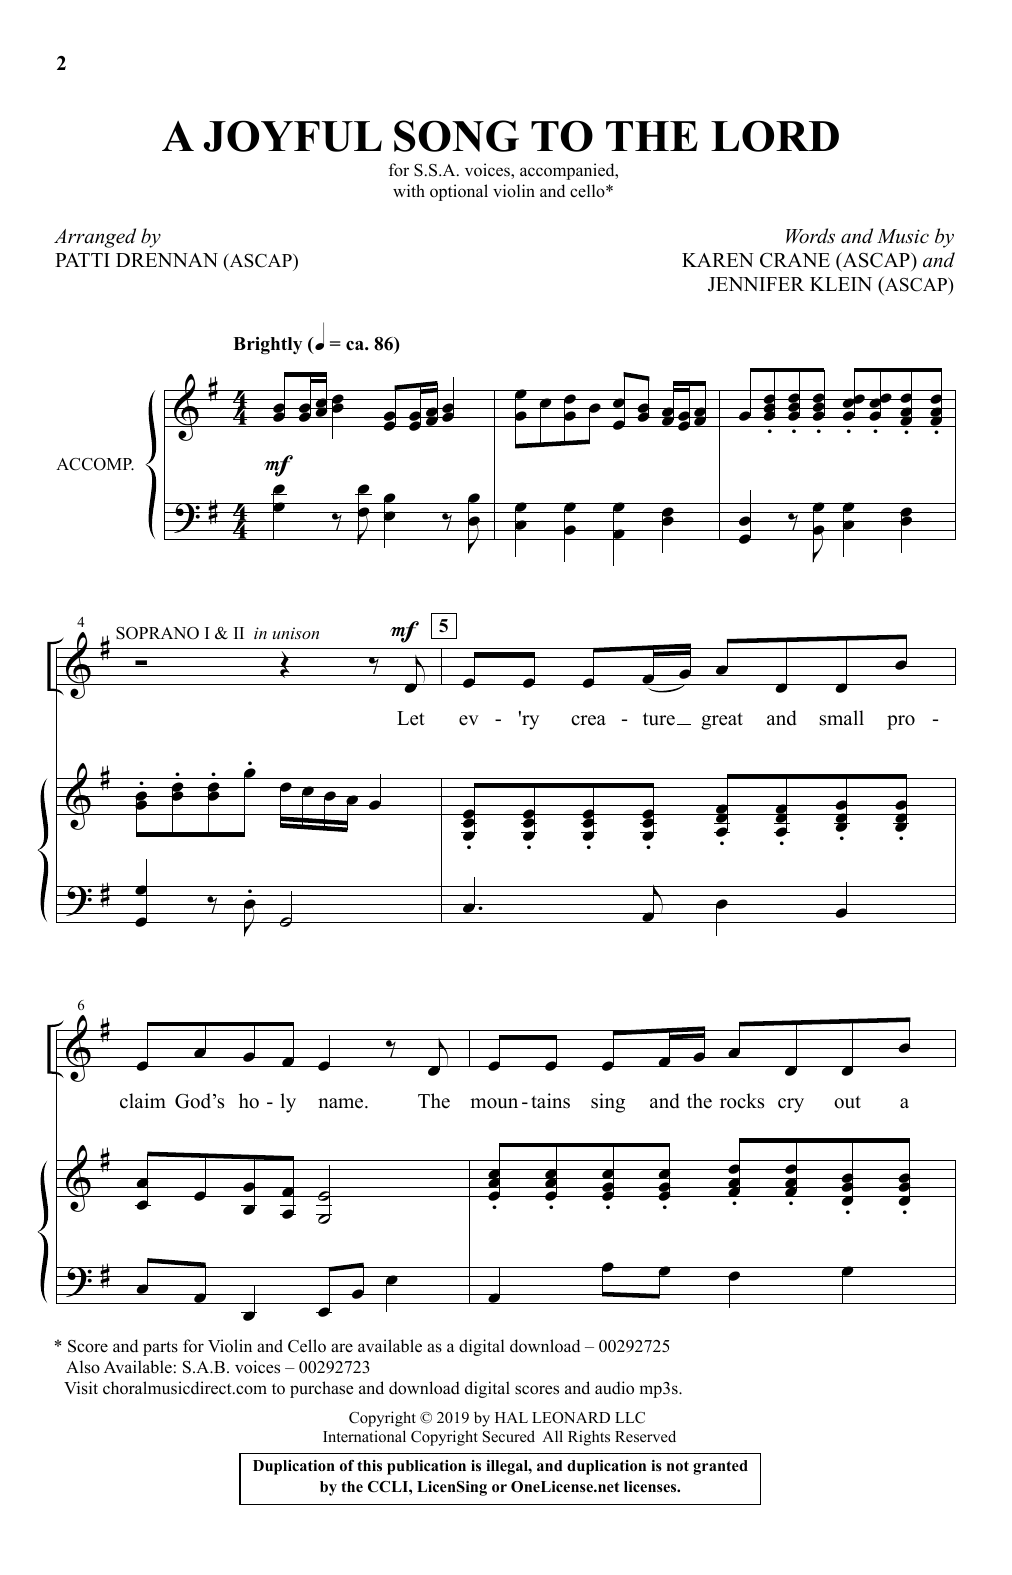 A Joyful Song To The Lord (arr. Patti Drennan) (SSA Choir)